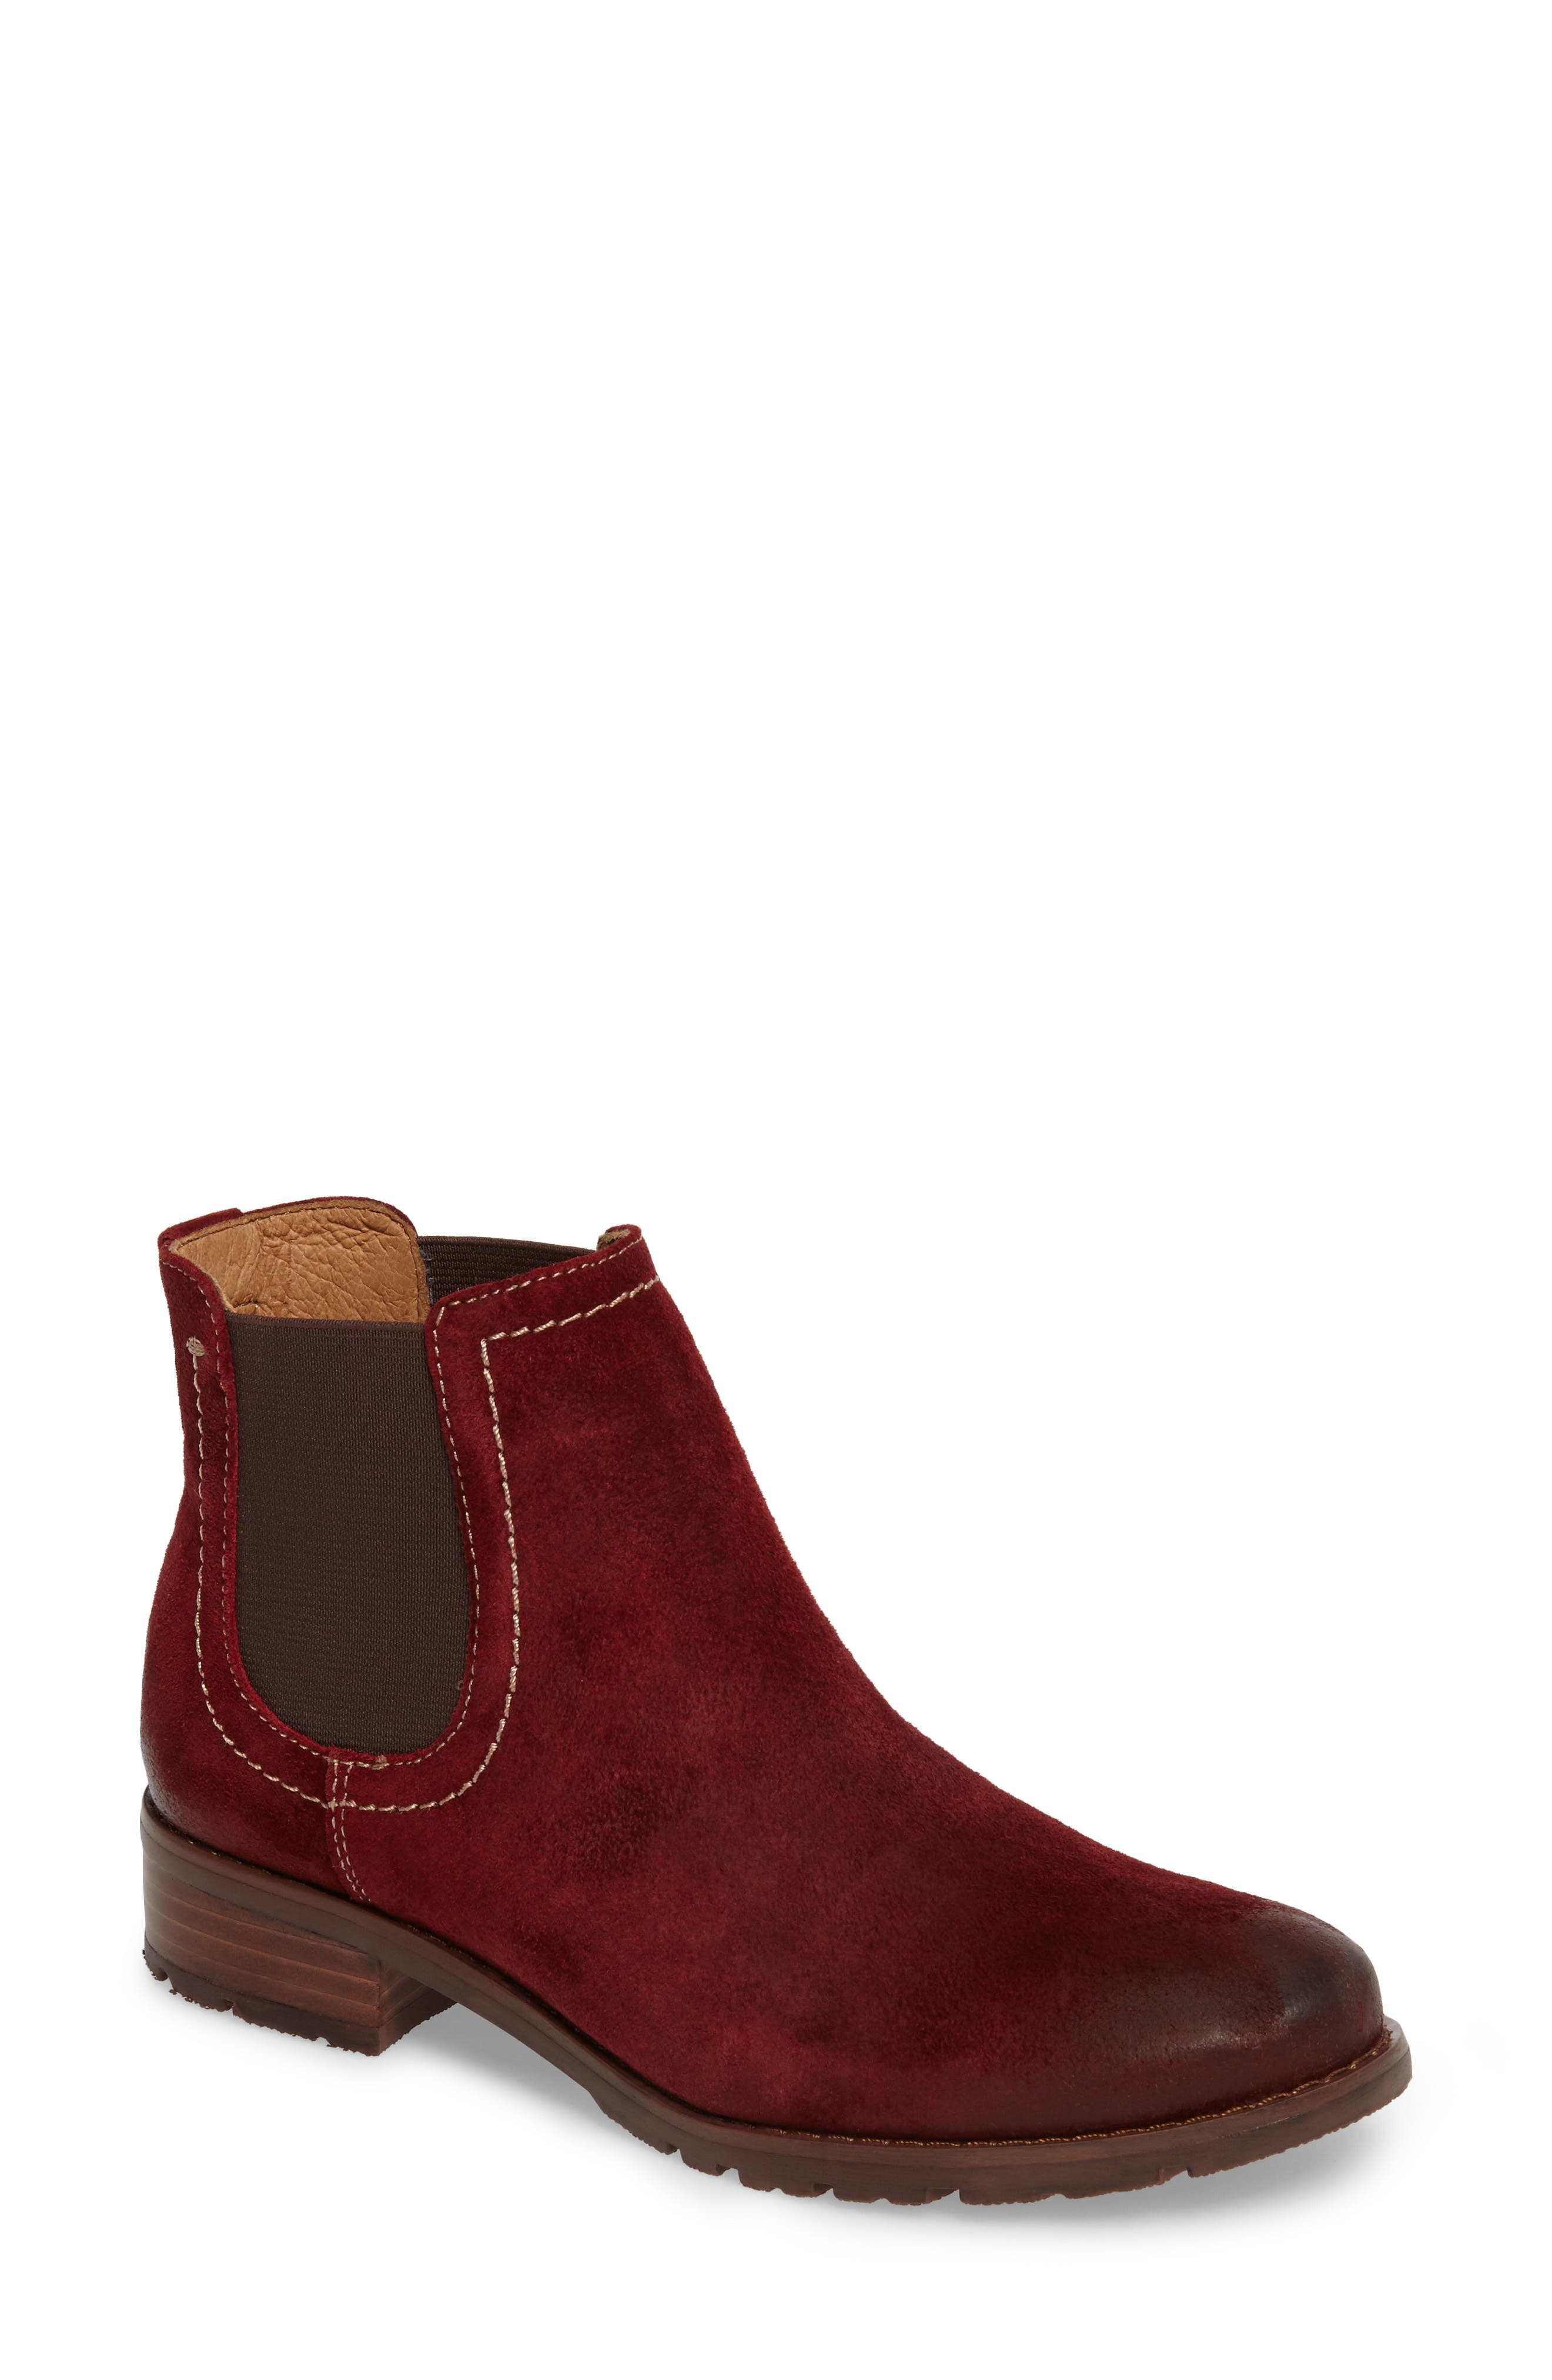 'Selby' Chelsea Bootie,                             Main thumbnail 1, color,